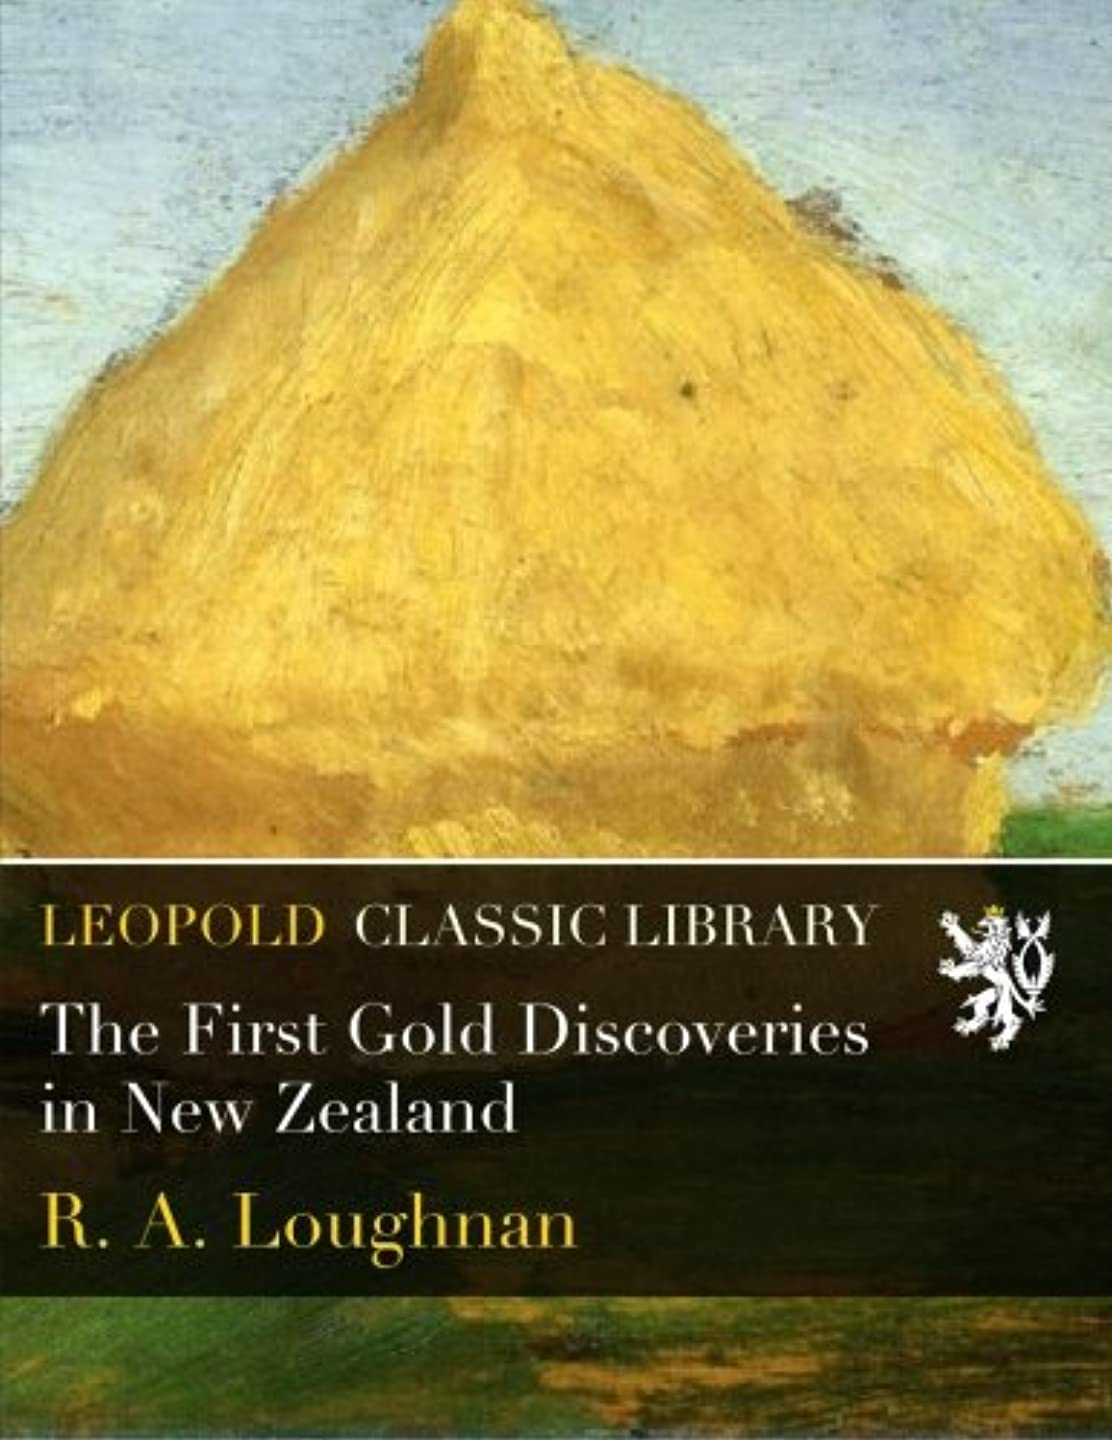 良心ペースト通り抜けるThe First Gold Discoveries in New Zealand